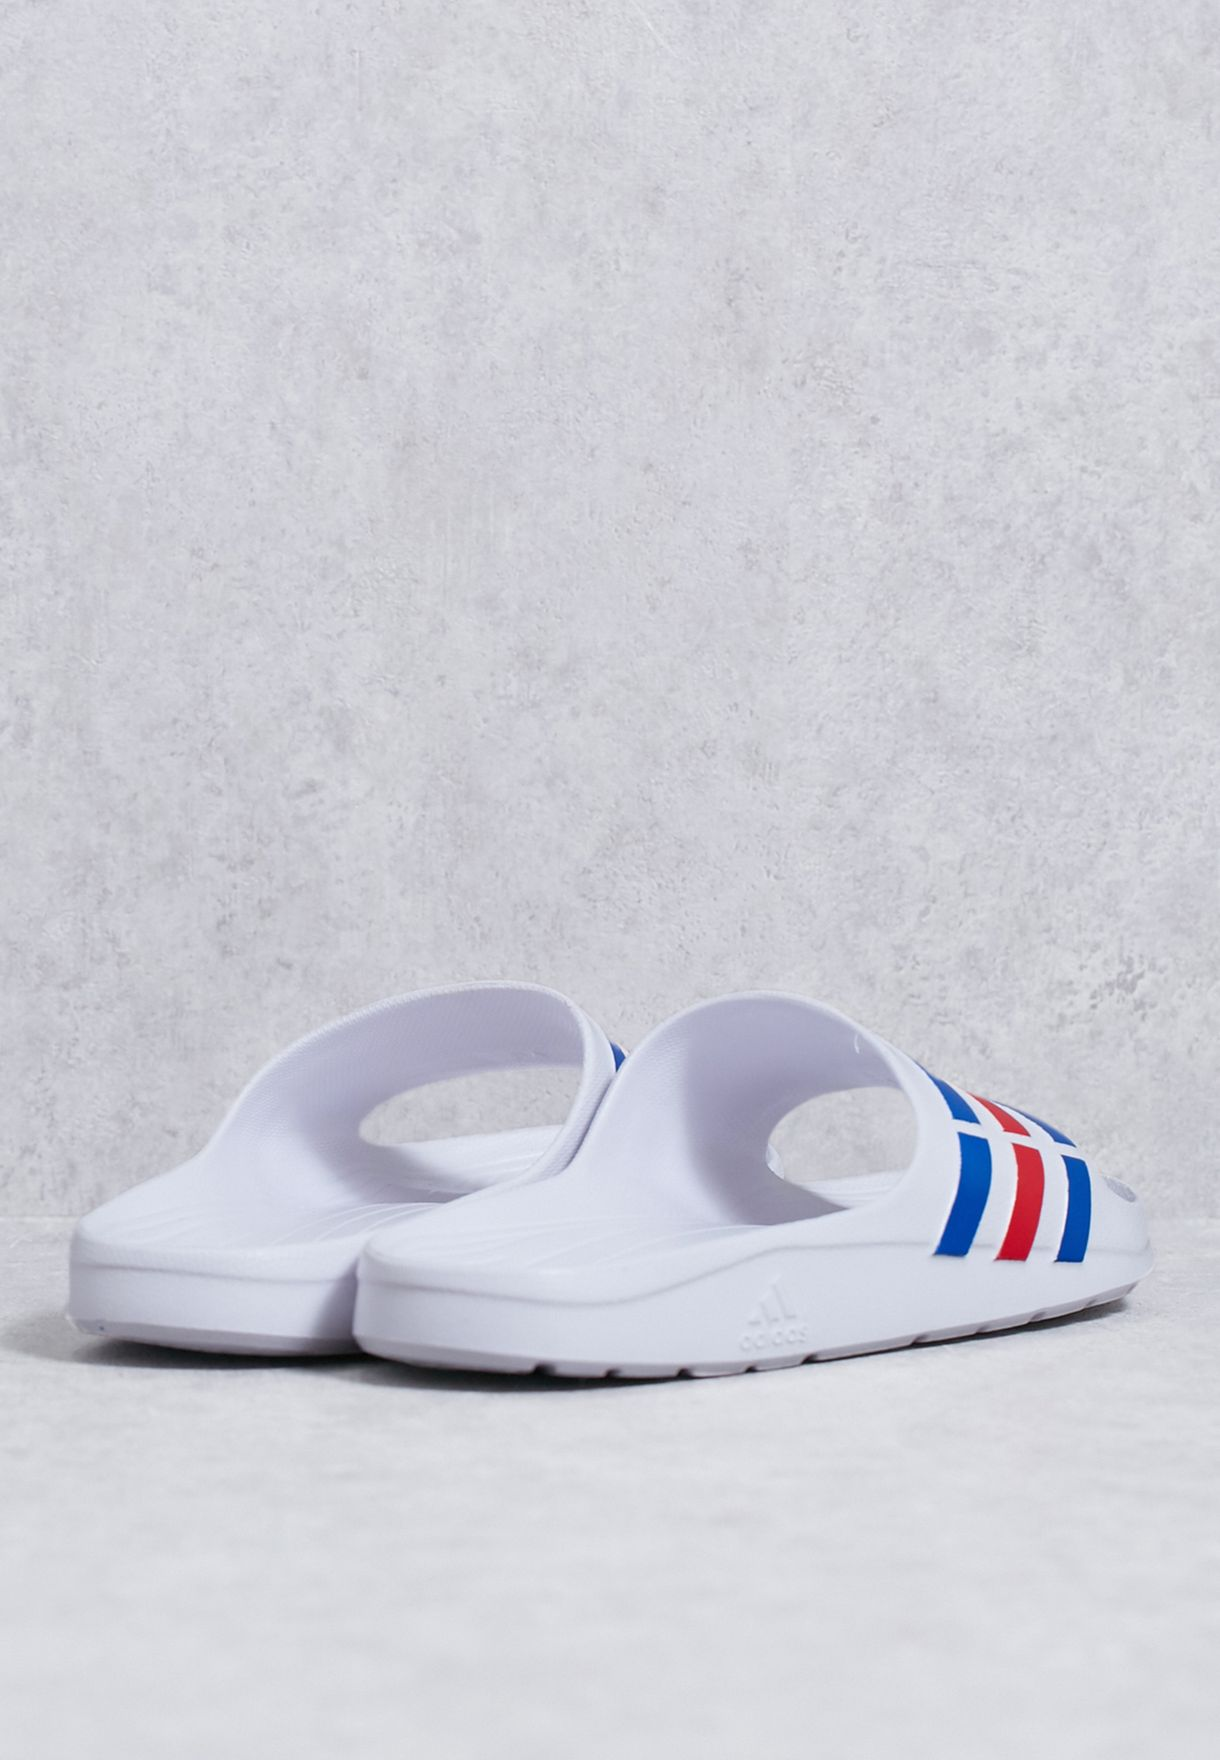 db001acc1cea Shop adidas white Duramo Slide U43664 for Men in UAE - AD476SH09VOS